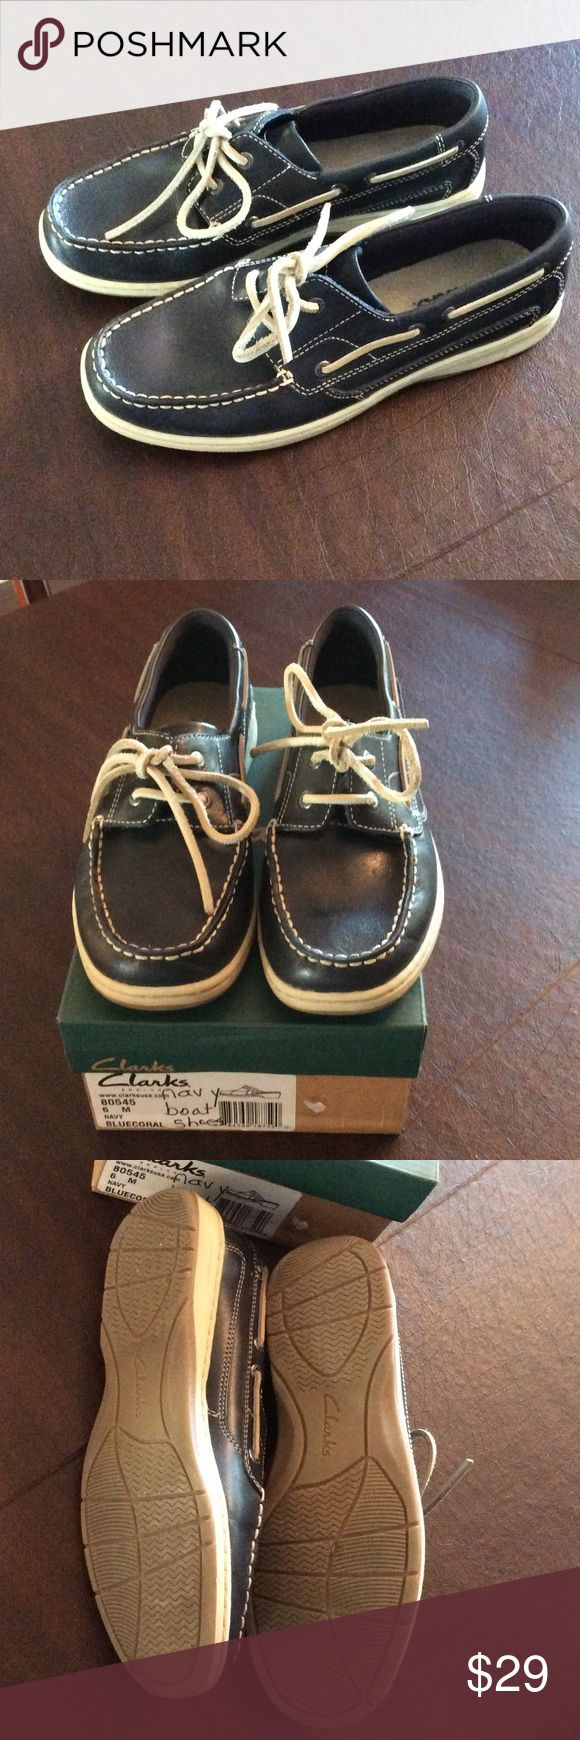 Clarks Ladies Boat Shoes, EUC, size 6m Adorable and comfortable Women's Clarks Deck Shoe in Navy. Perfect for summer with shorts or capris! Worn only a few times they are in great condition. Off-white laces and soles.  Have been kept in the box and will ship in the box. Make me an offer and grab these before they are gone! Clarks Shoes Sandals